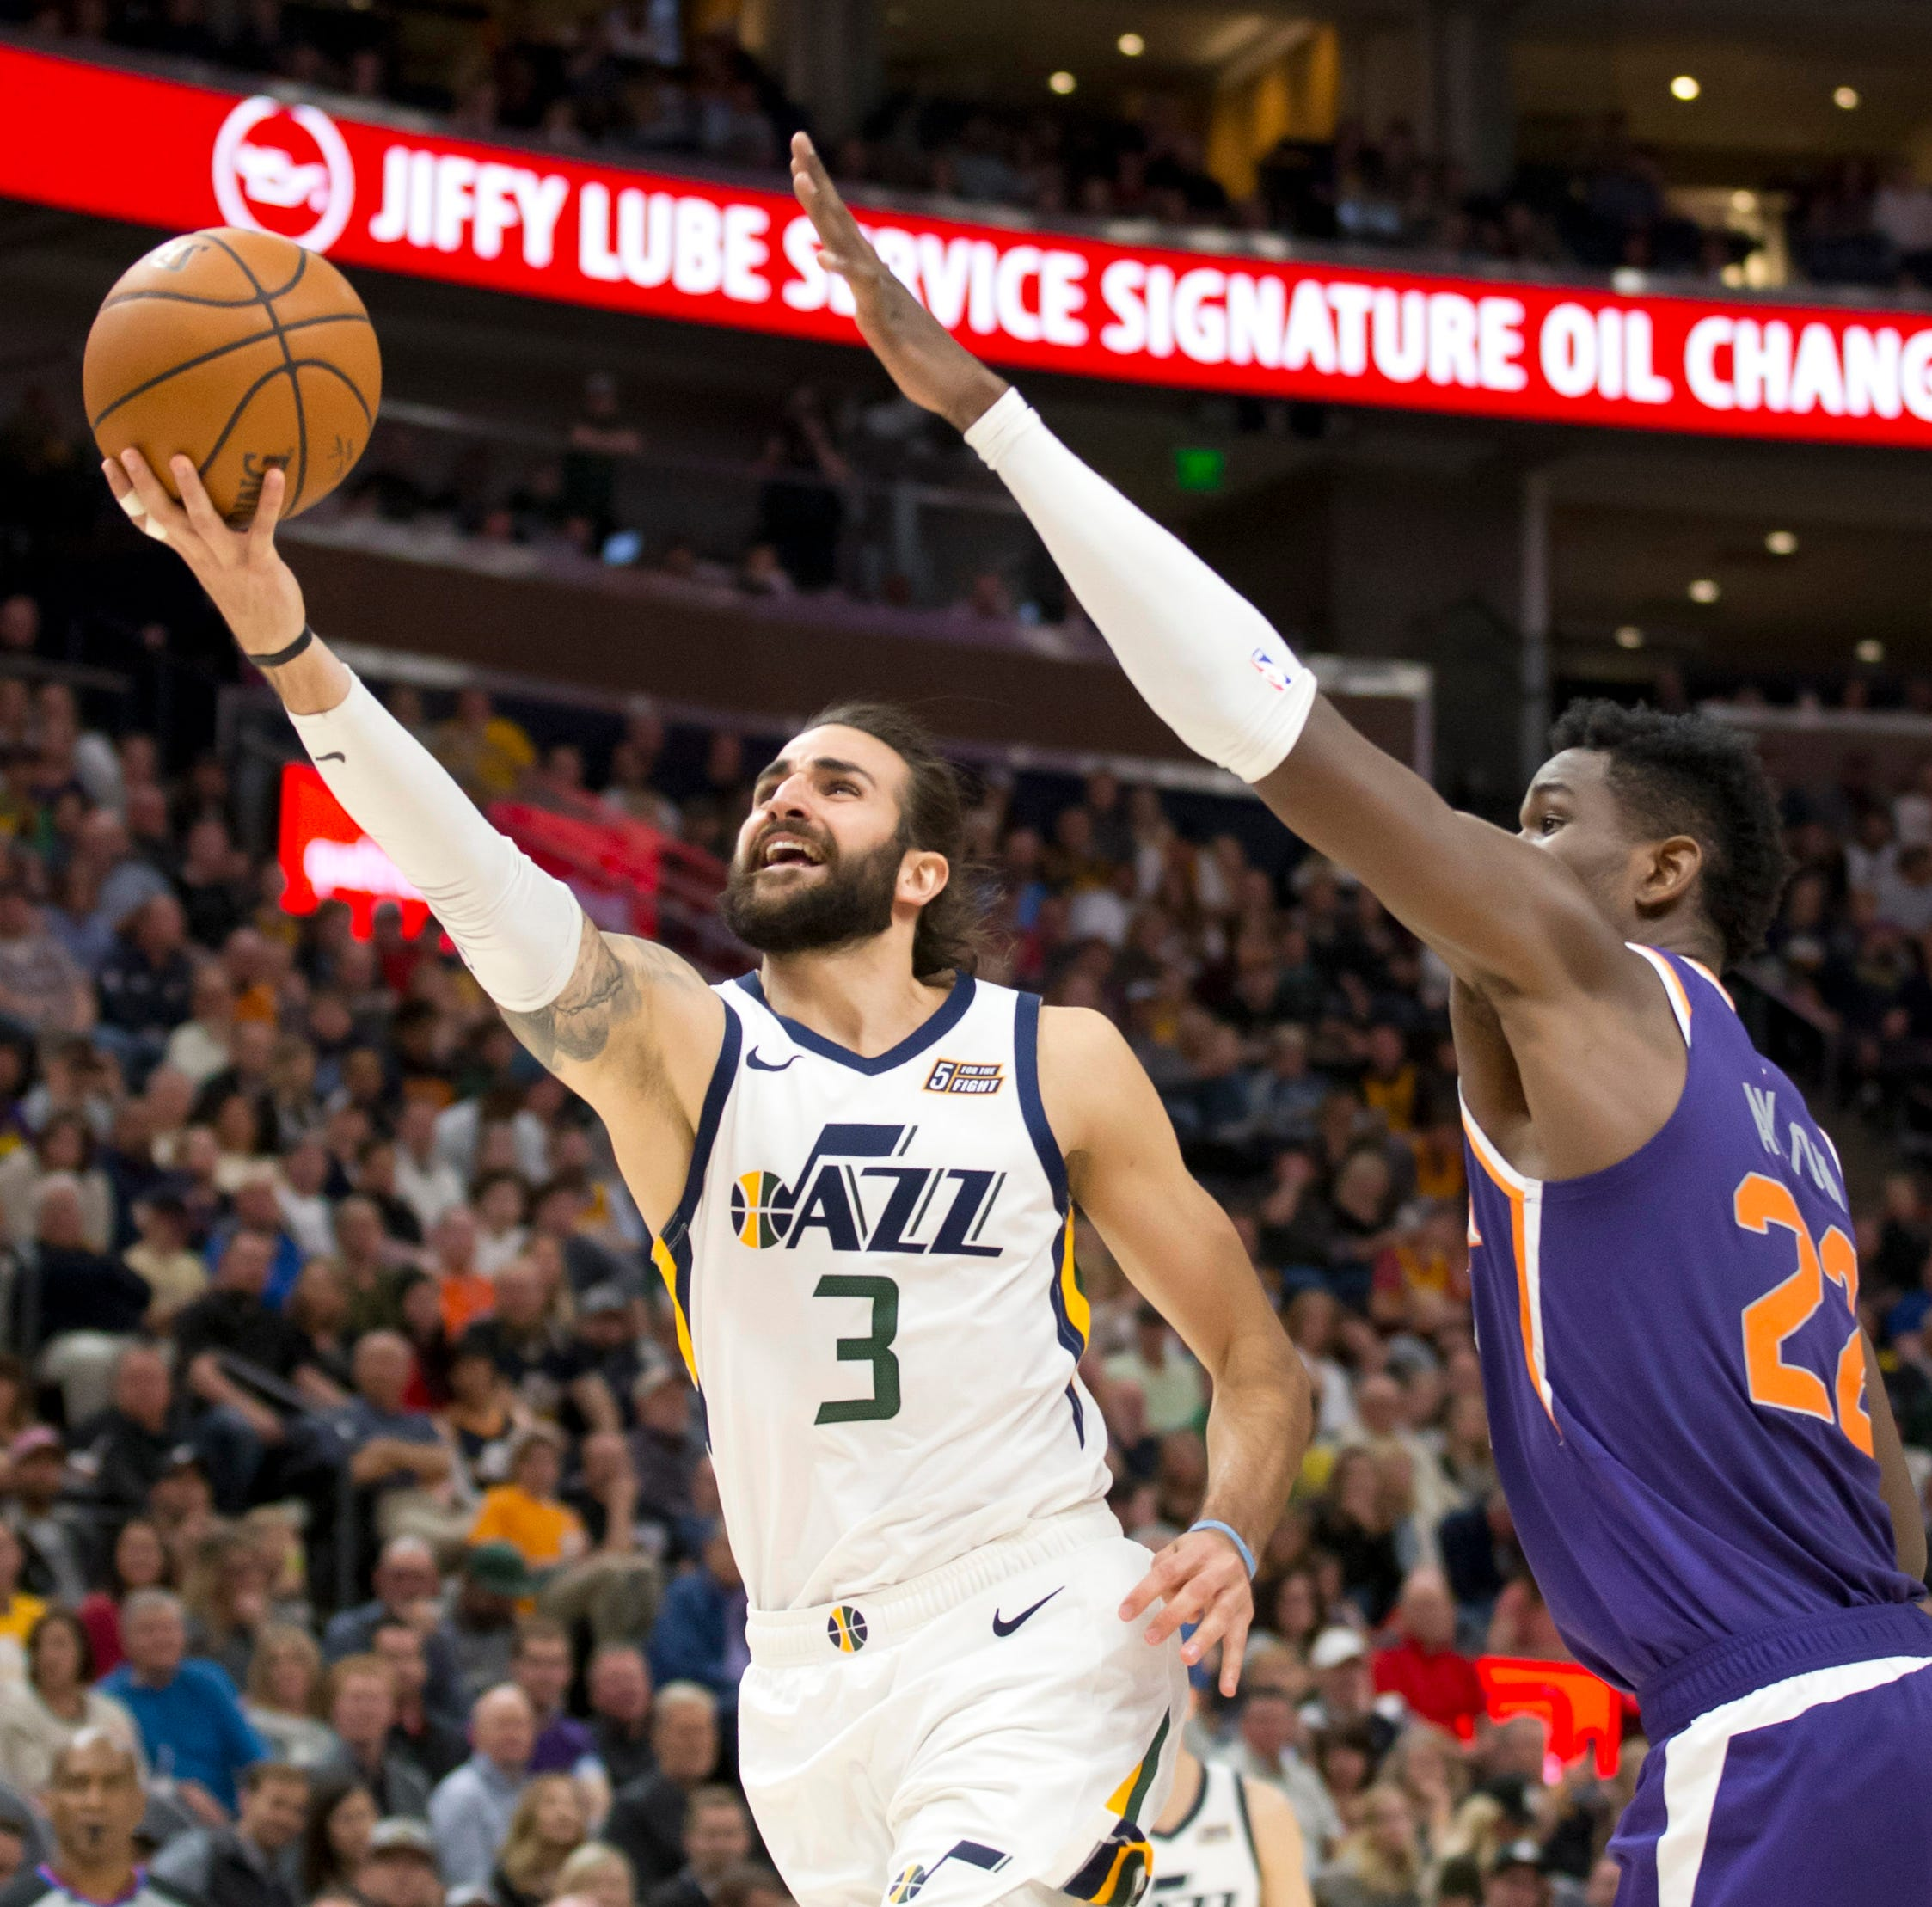 Ricky Rubio to Suns? Point guard could be intriguing NBA free agency option in Phoenix